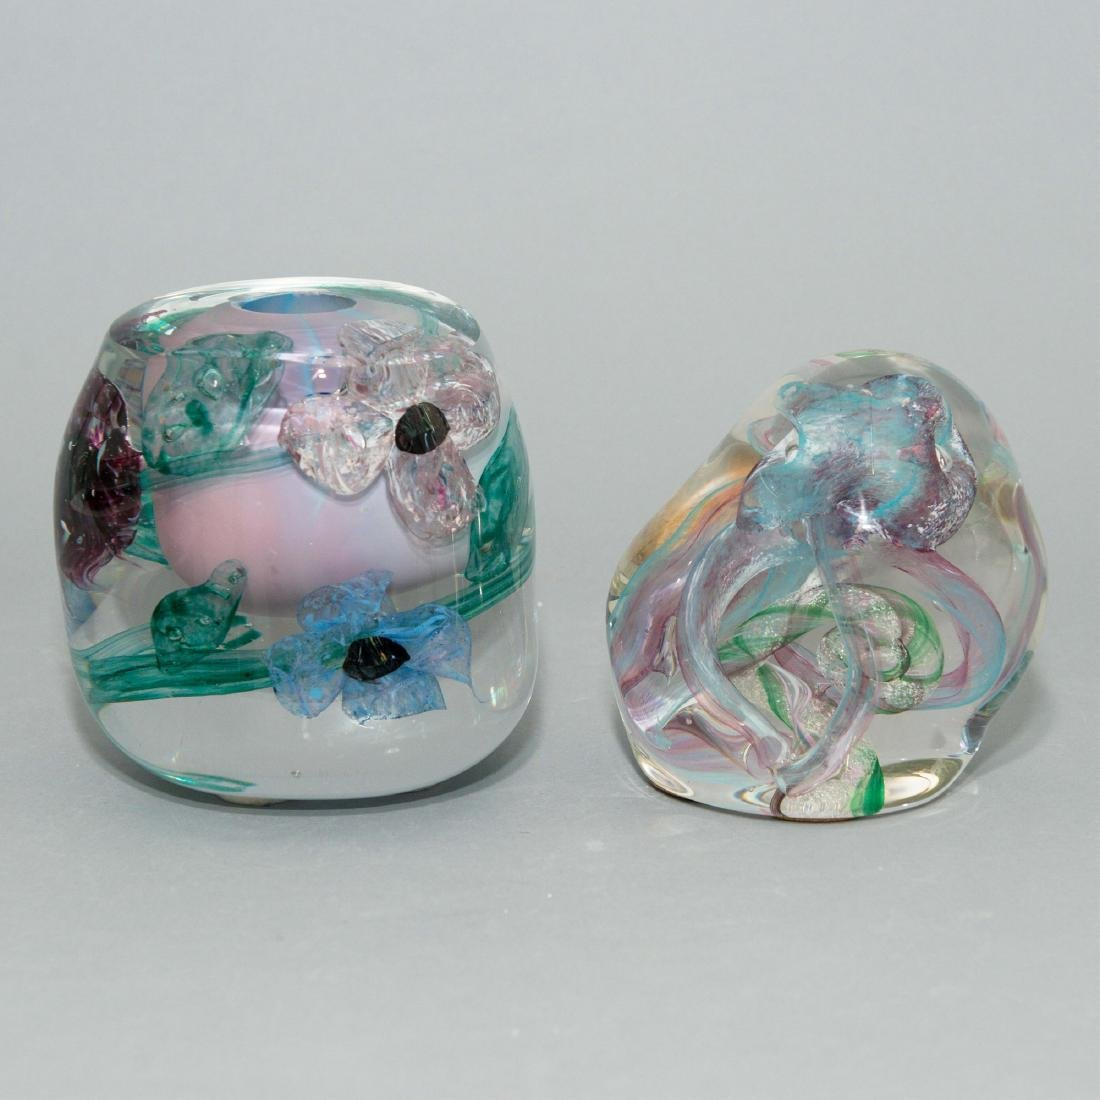 PAIR OF LISA LEYDON ART GLASS VASE AND SCULPTURE - 3